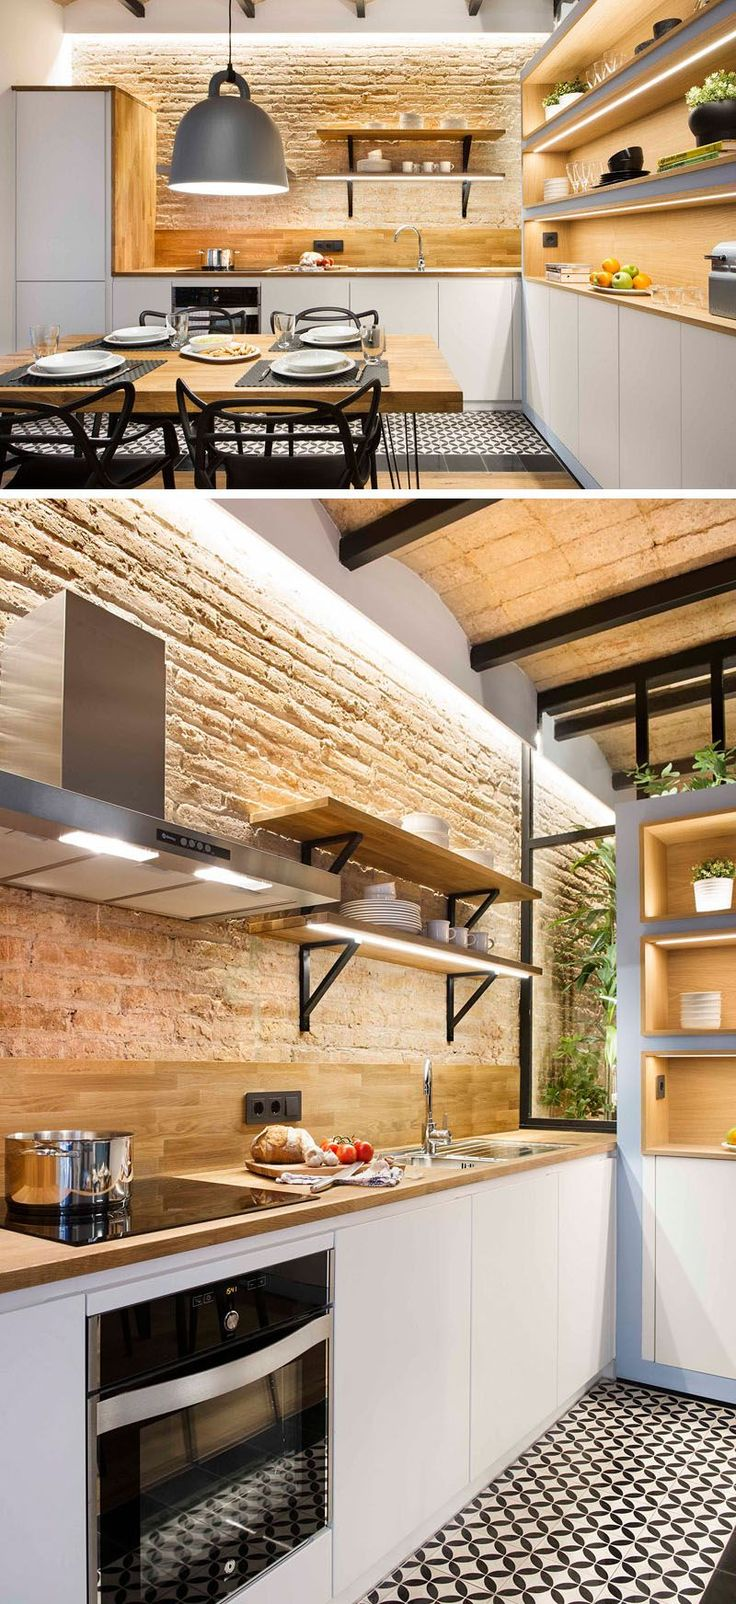 In this small modern kitchen, wood countertops and backsplash compliment the warm brick while white cabinets, stainless steel appliances, and open shelving with built in lighting help keep the space feeling bright. The combination of the new materials and the old exposed brick creates a modern feel mixed with a hint of rustic charm.